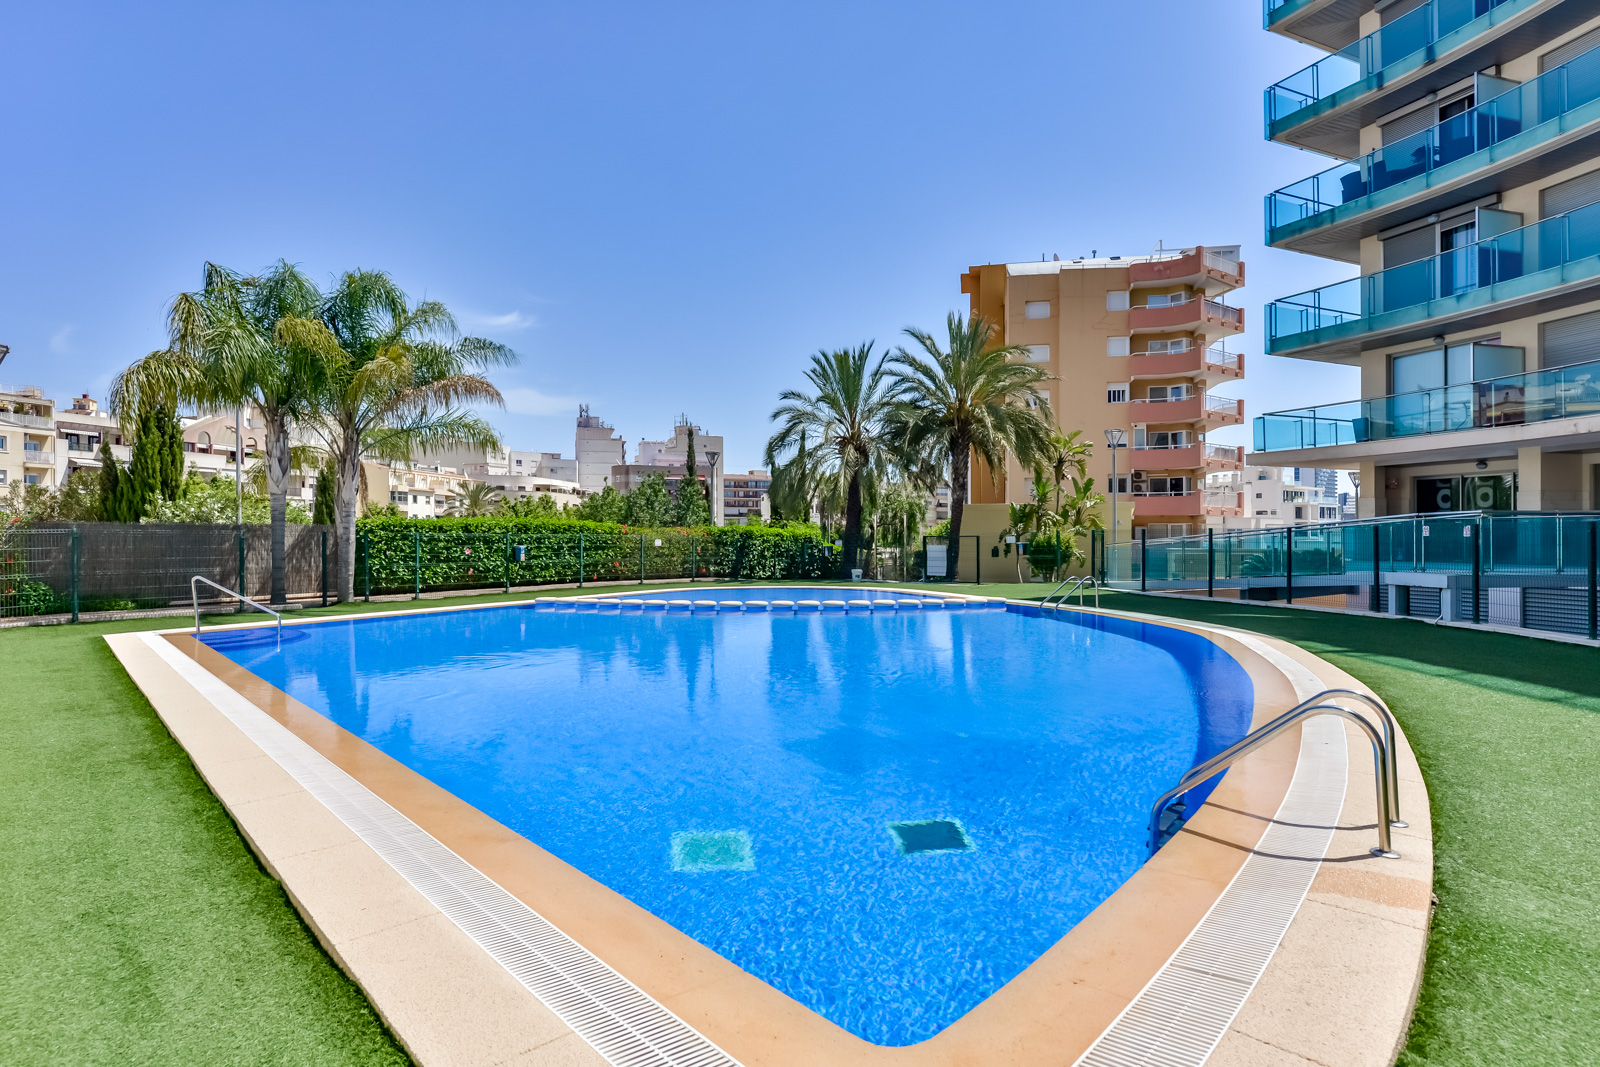 Apartamento Borumbot 26, Apartment  with communal pool in Calpe, on the Costa Blanca, Spain for 6 persons.....